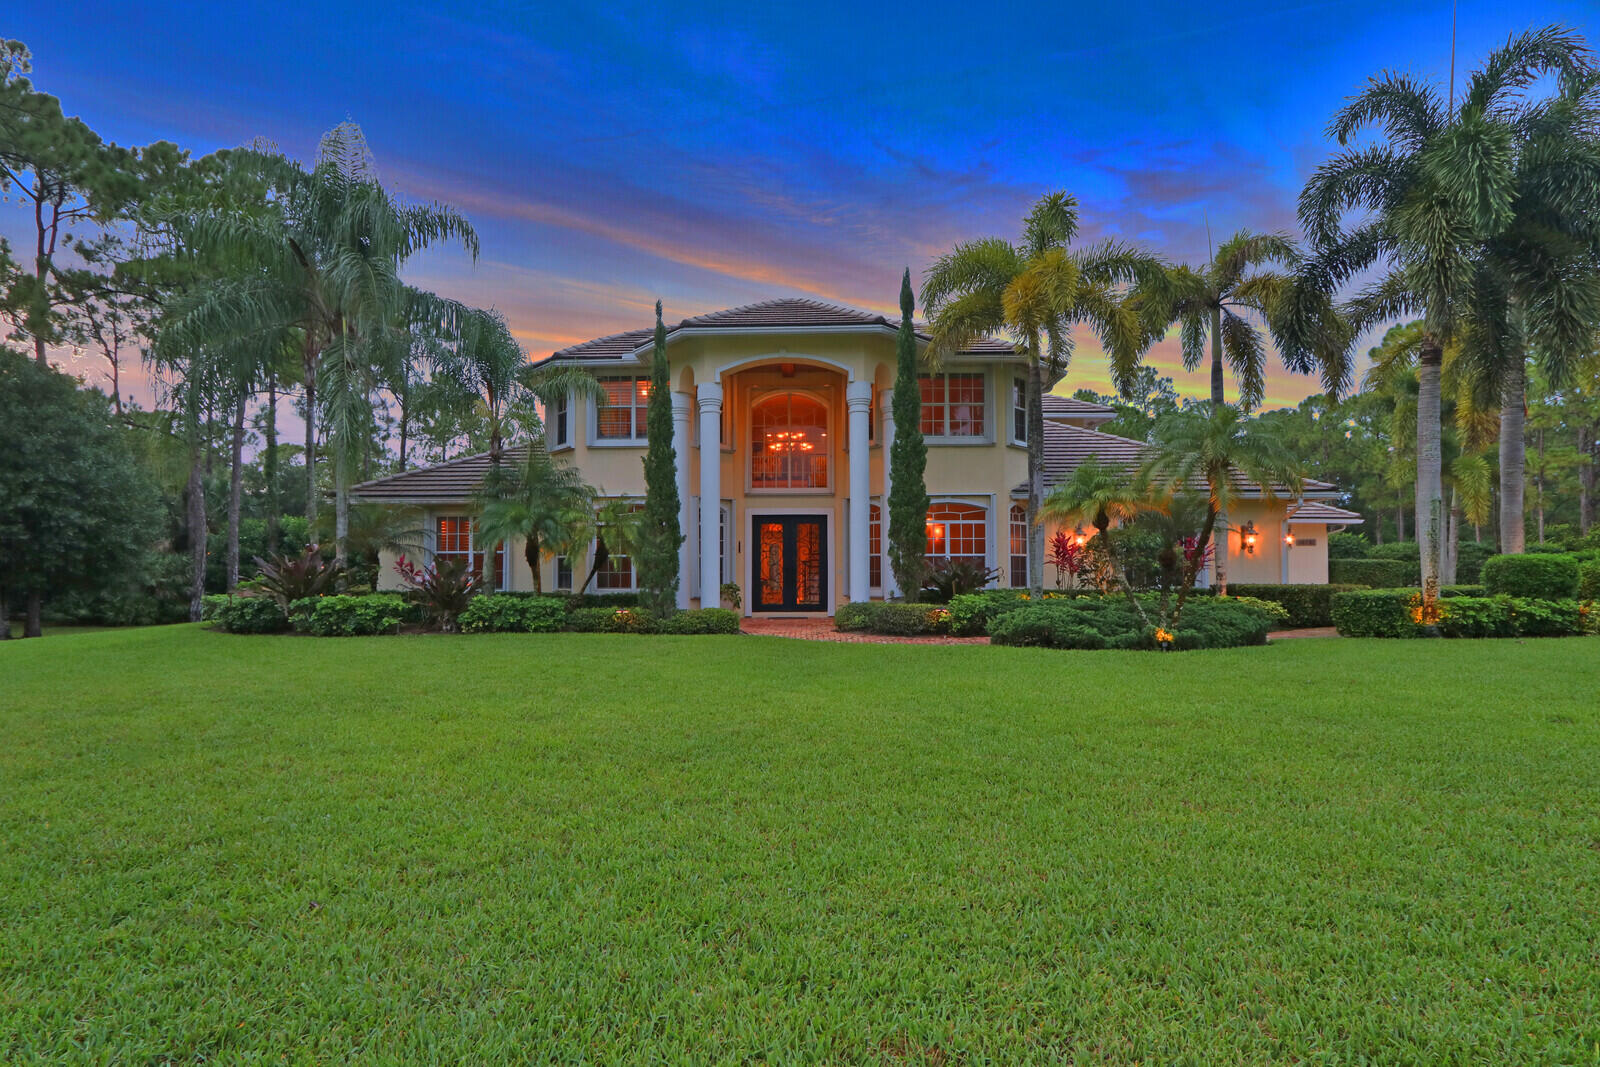 Step into the private oasis in the most desirable area of Jupiter Farms. This is a true, one of a kind estate home on a lush landscaped 2.5 acre beautiful property . This home is not only perfect for entertaining, working from home, raising a family but also as a private wellness retreat for the most meticulous buyers looking for luxury, privacy and high-end finishes. This home has 5br/4ba/2 offices/yoga studio/3 car gar. home with over 6300 total sq.ft. The double gated front entrance with Chicago brick driveway is just a hint of the magnificence inside, from the two-story well-lit foyer that opens straight through to the living room, formal dining room and spacious family room that welcomes you with decorative Chicago brick accents, wood burning fireplace & built-in wall unit, Brazilian cherry floors and a study on the left side of the home. Friends & family will love to gather around the well-appointed kitchen, that includes granite counter tops, custom wood cabinetry, a large center gas cook island, desk area, butler's pantry, and an additional dining area with access to a covered lanai that includes a summer kitchen, a gorgeous pool/jacuzzi with rock water fall feature, tiki hut, fire pits & night lighting. The first-floor secluded master suite is in its own wing, it is complete with French doors to the lanai, decorative ceiling, dual walk-in closets, and a luxurious spa-like bathroom with a two-person marble tiled shower, separate tub & double sinks with ample storage. Also, on the first floor a guest suite & cabana bathroom is on the other side of the home that could be used as a mother-in-law or maid quarters. The gorgeous staircase leads to the 2nd floor with three additional bedrooms, 2 full bathrooms one of which is a jack & jill bathroom, a study/office and a yoga/workout studio with a private sauna. A must see!